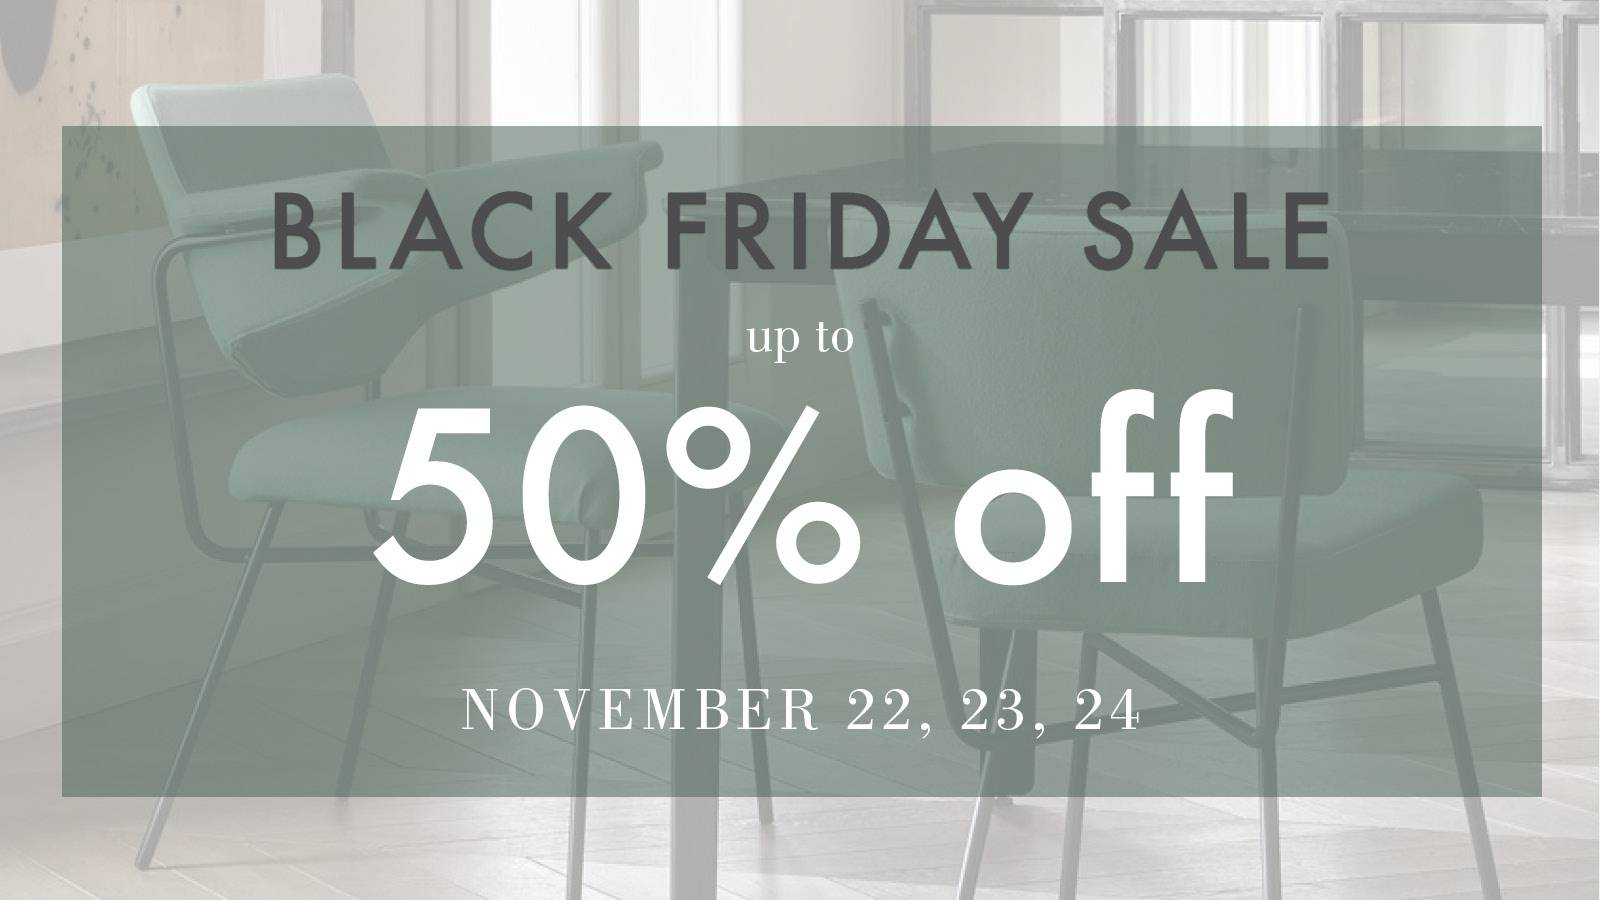 black friday offer design furniture sag80 milan